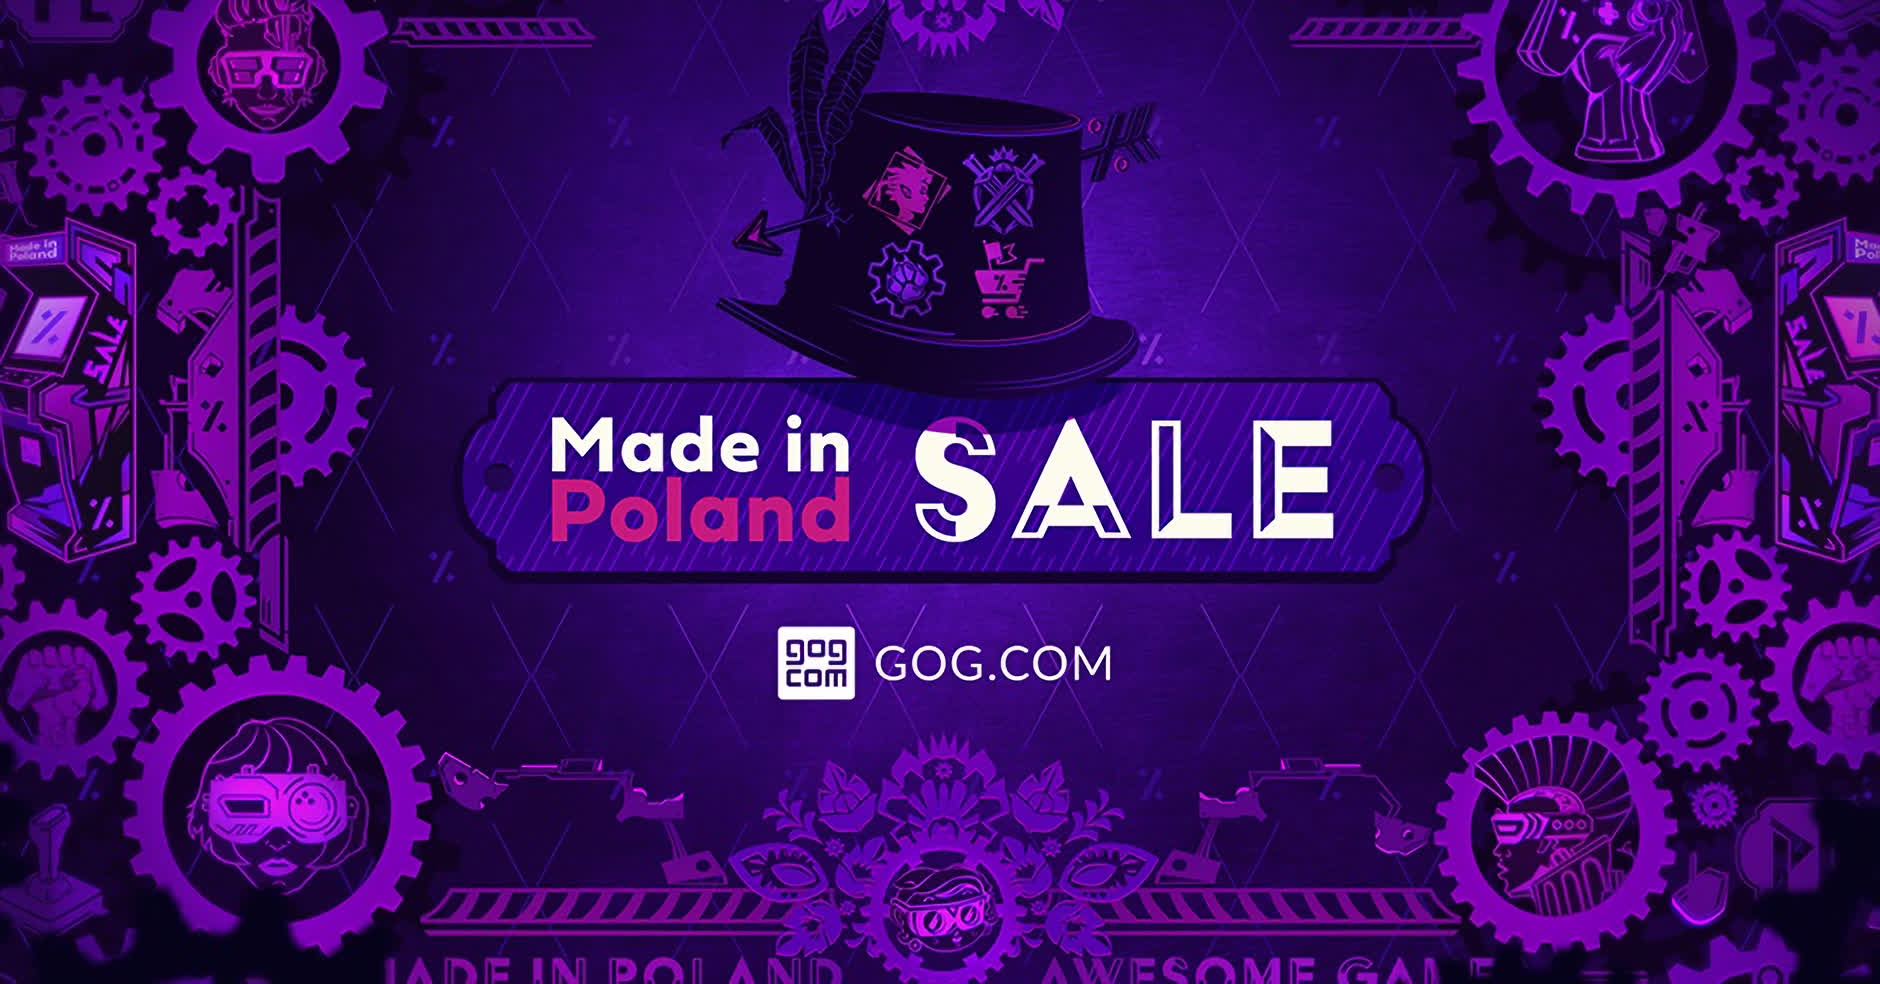 GOG's Made in Poland sale is this week, plus grab a free copy of Butcher